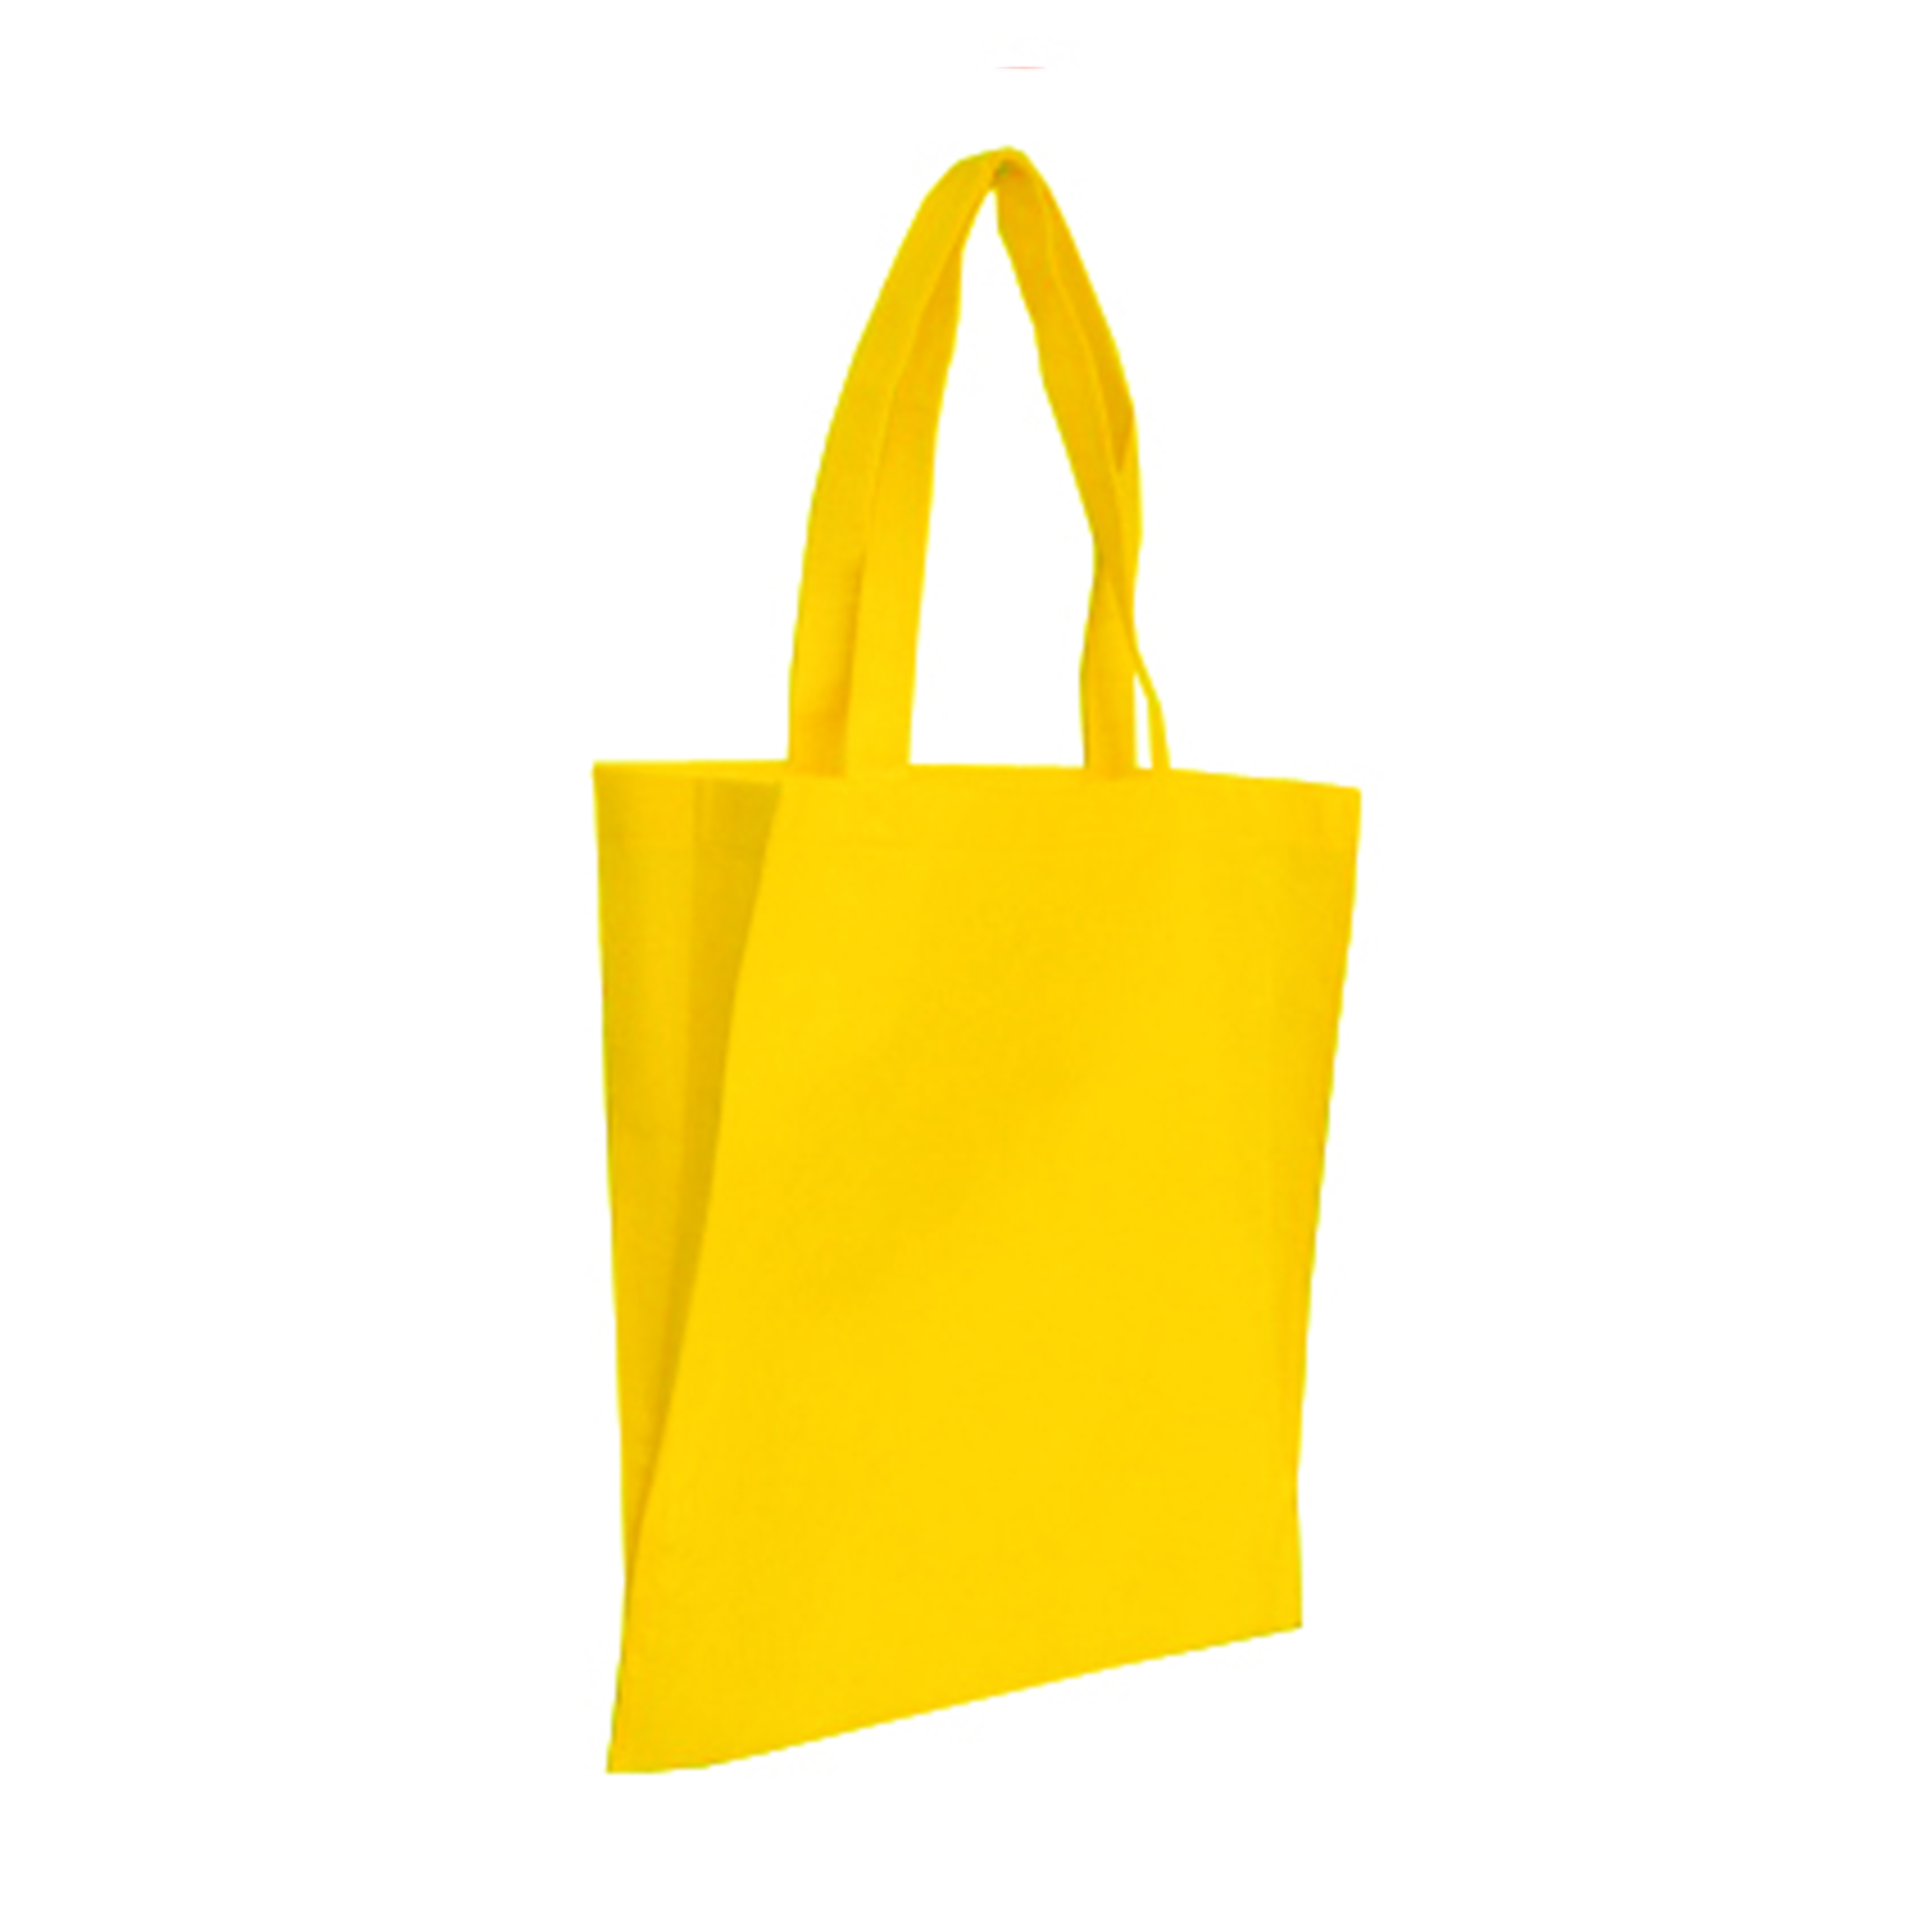 NON WOVEN BAG WITH V GUSSET - 1 Colour Print, From $1.07